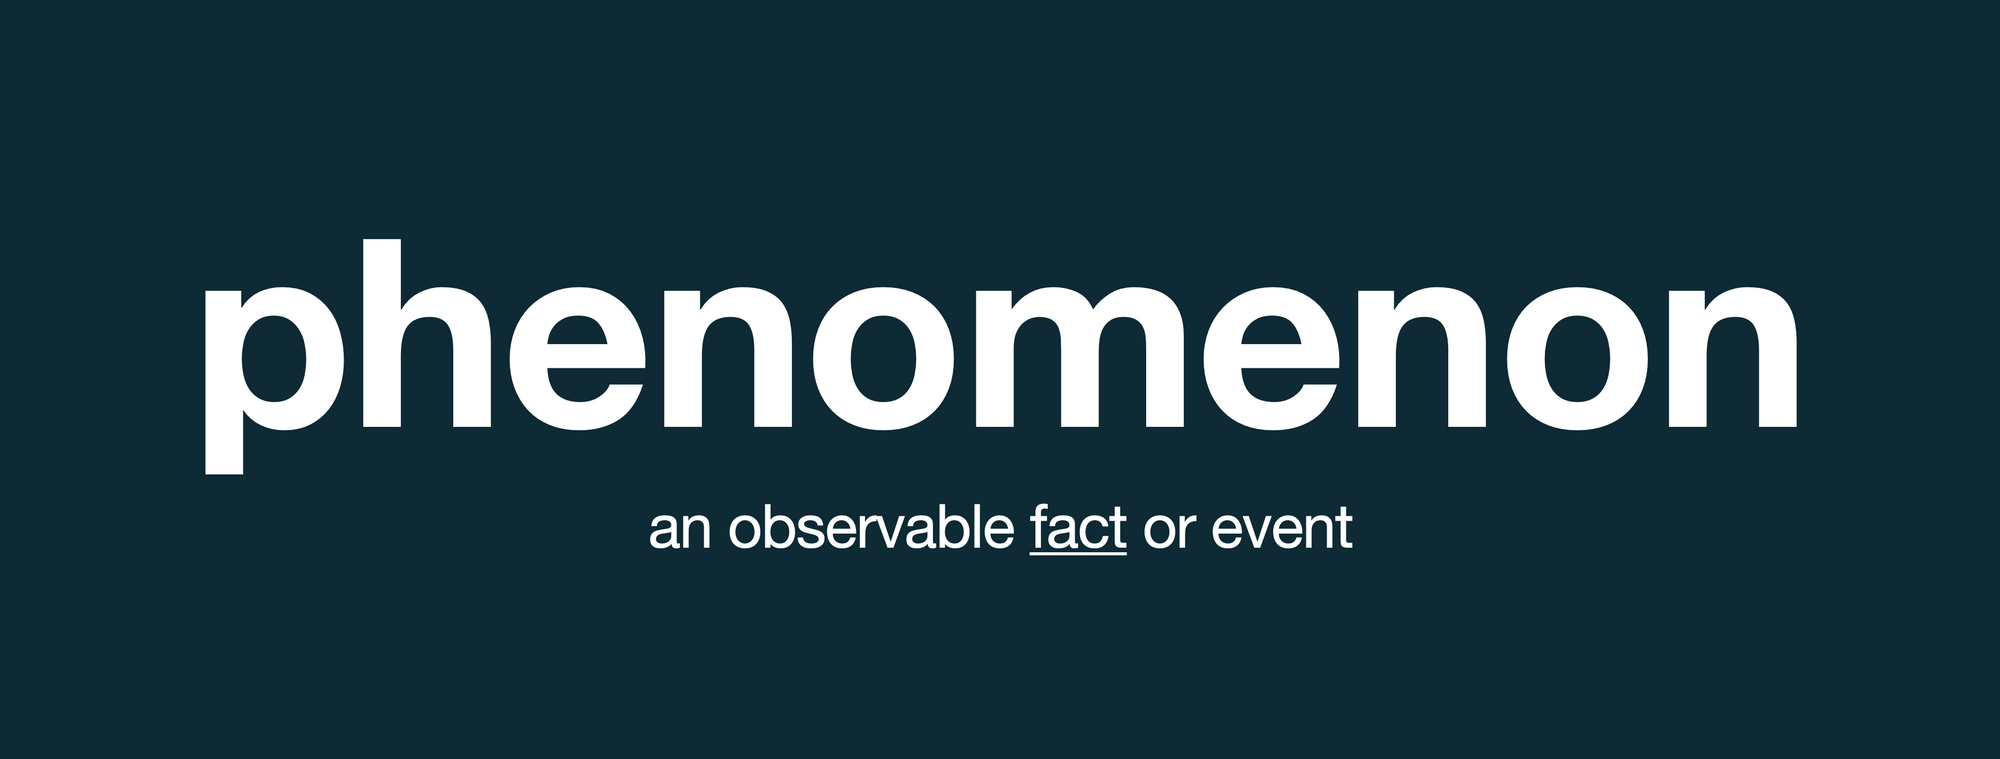 phenomenon: an observable fact or event